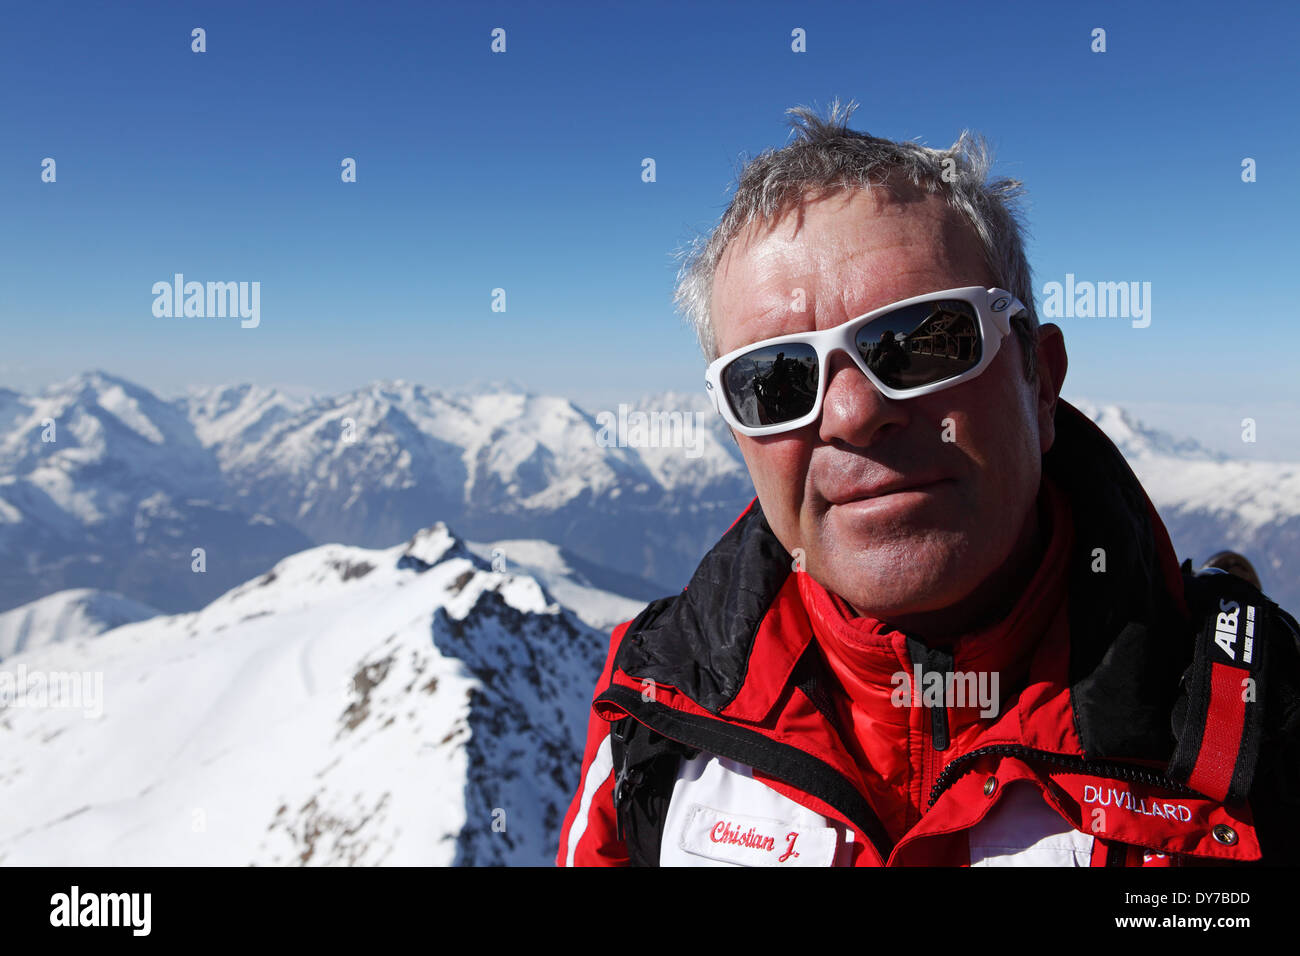 An ESF ski instructor at the Pic Blanc station at 3,300m in L' Alpe d'Huez, France. - Stock Image